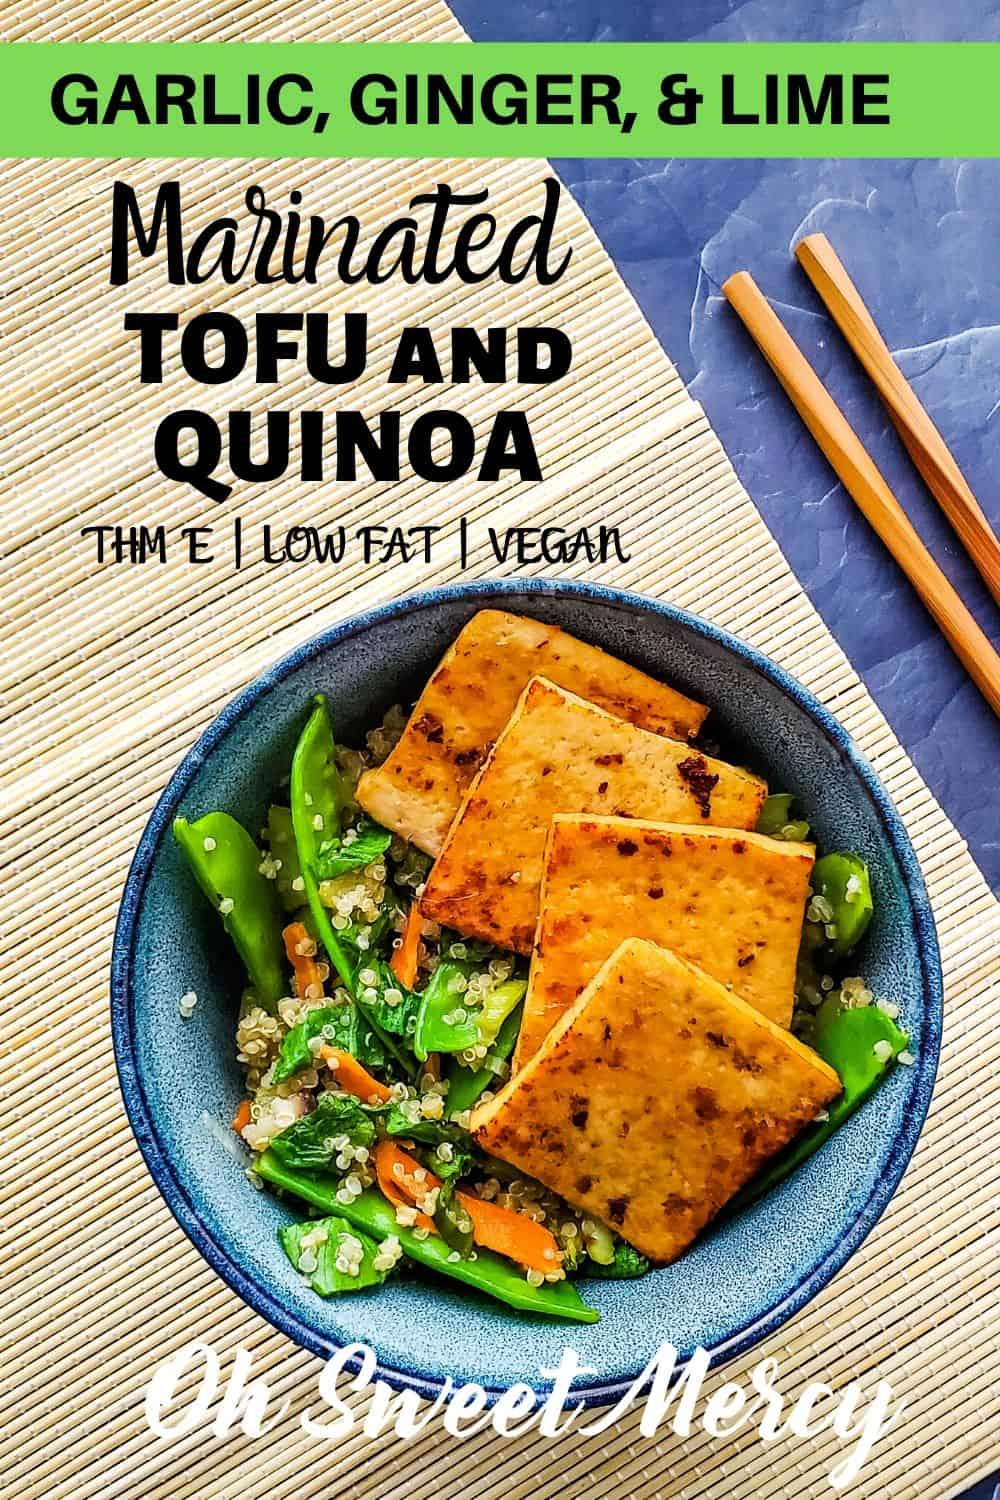 My Garlic, Ginger, and Lime Marinated Tofu and Quinoa makes a delicious, healthy, low fat, and meatless THM E meal choice. Packed with veggies and flavor, you'll never miss the fat (or the meat).